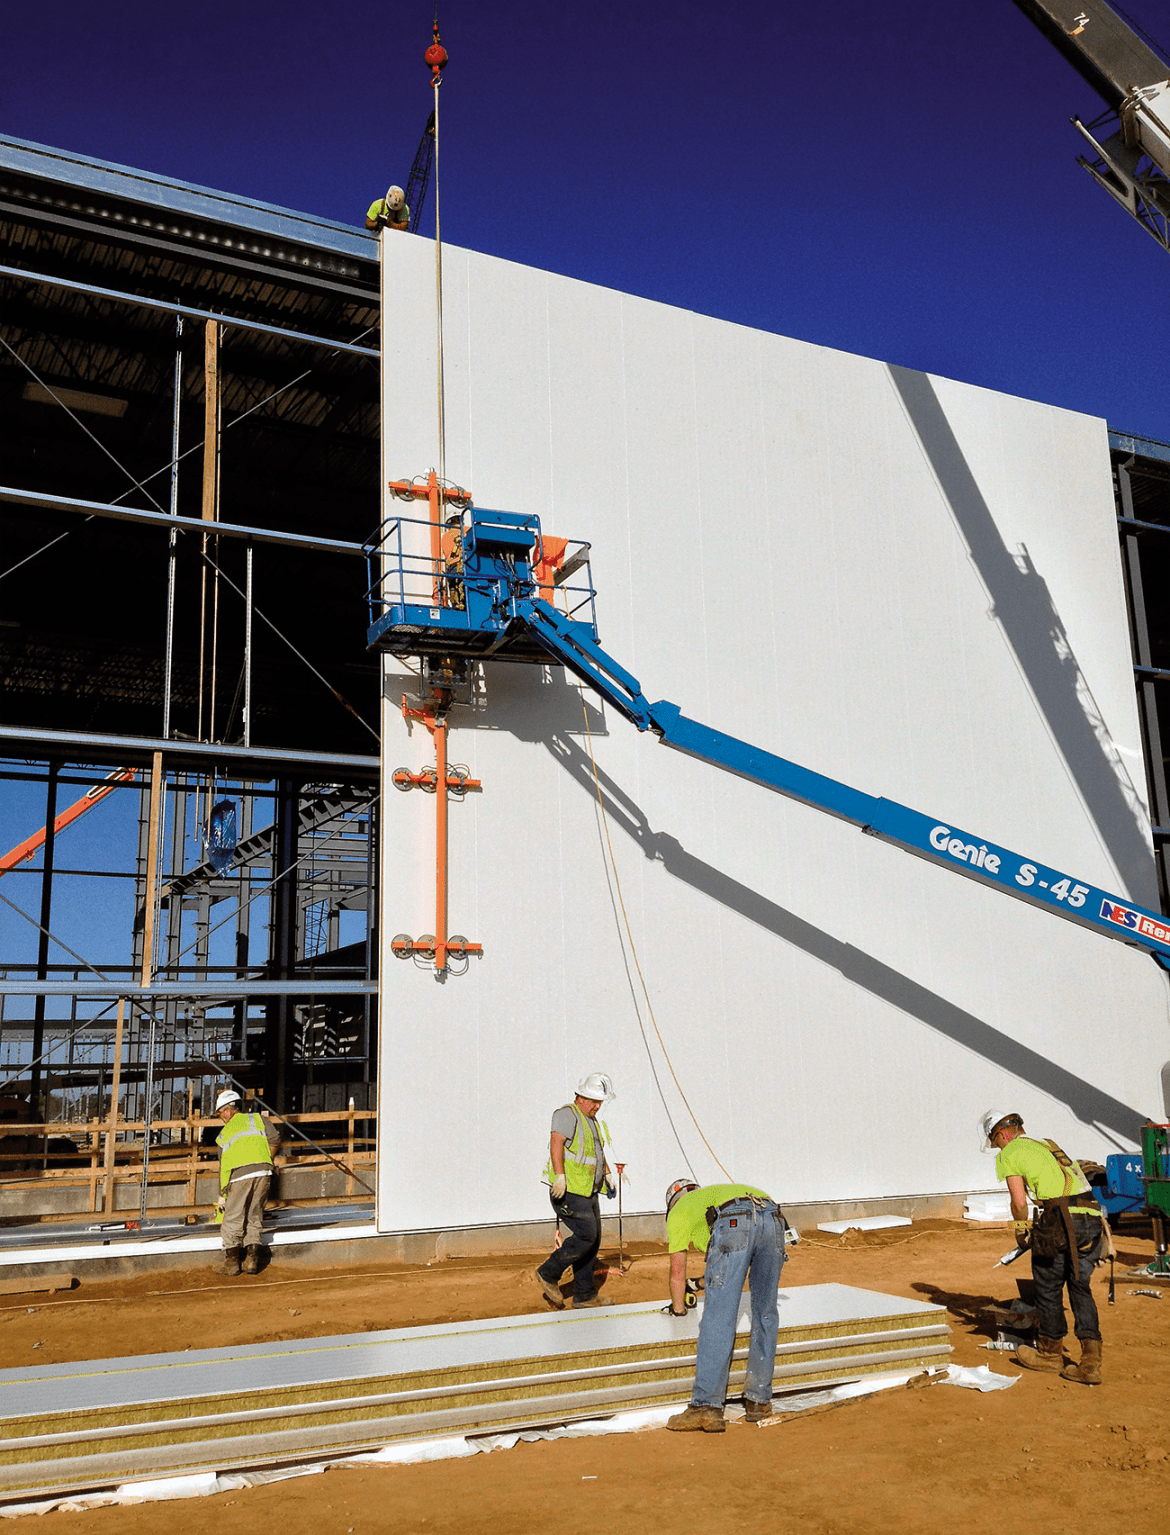 SWPs can be up to 12 m in length and can be installed vertically or horizontally. For larger panels, a crane is sometimes used to lower them into position.